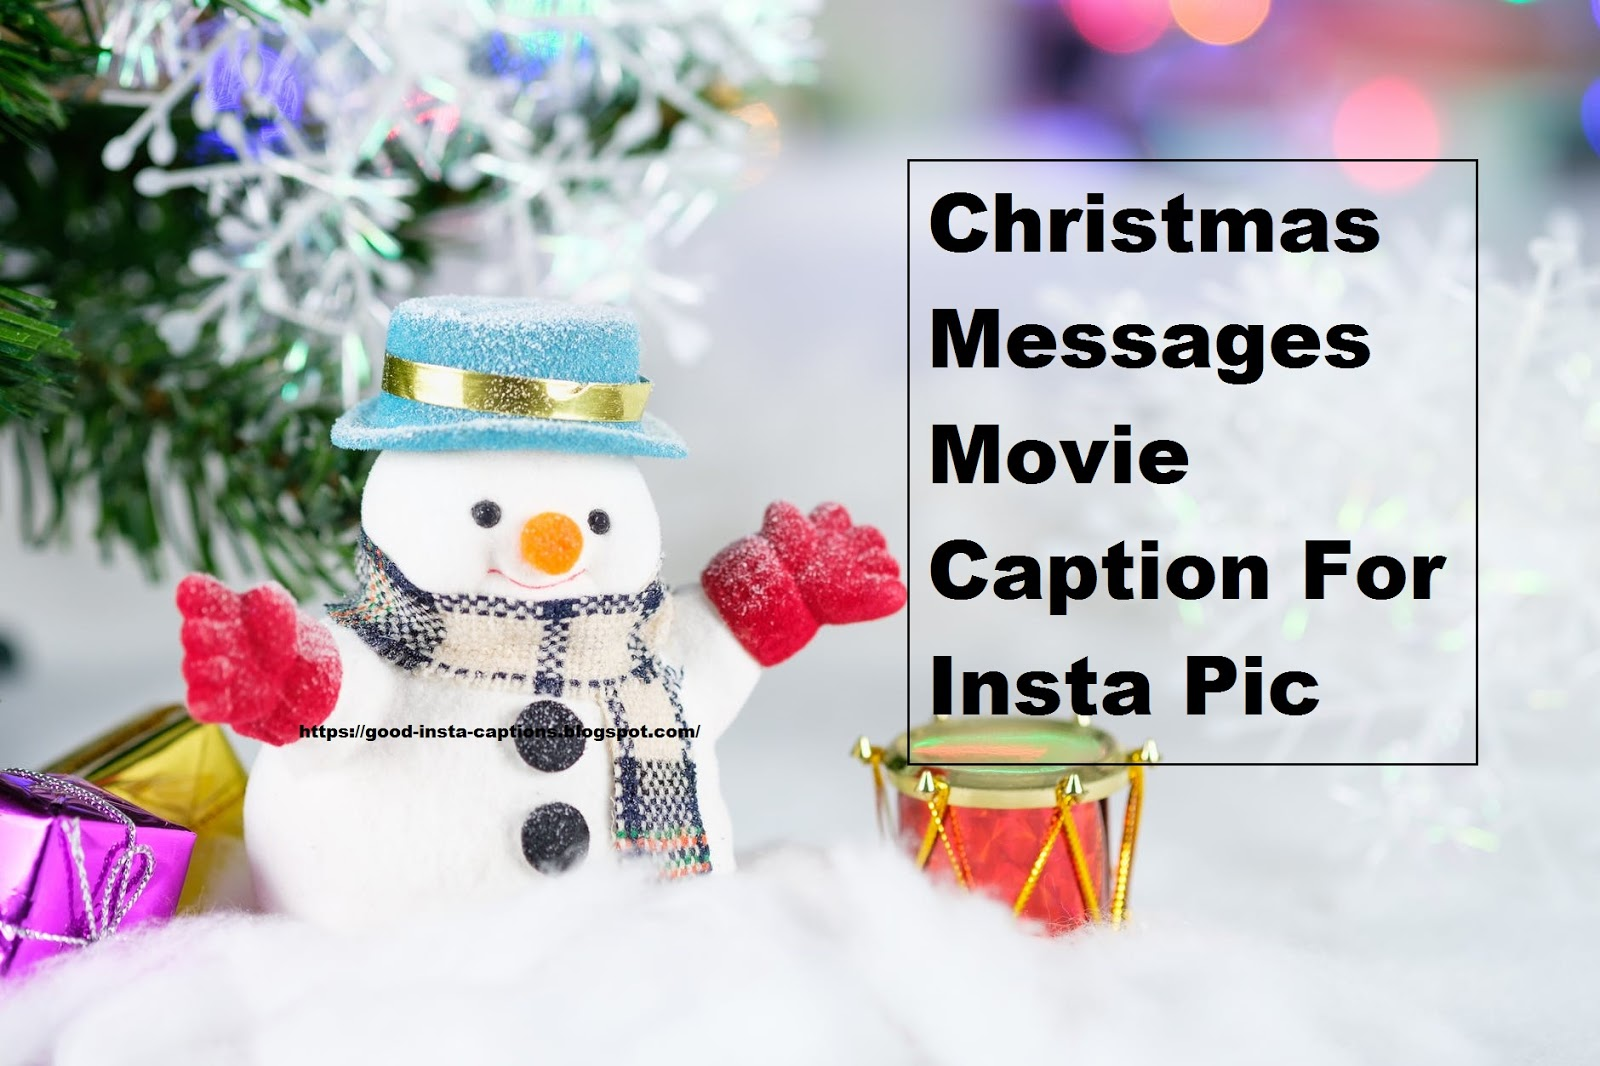 Christmas Messages Movie Caption For Insta Pic